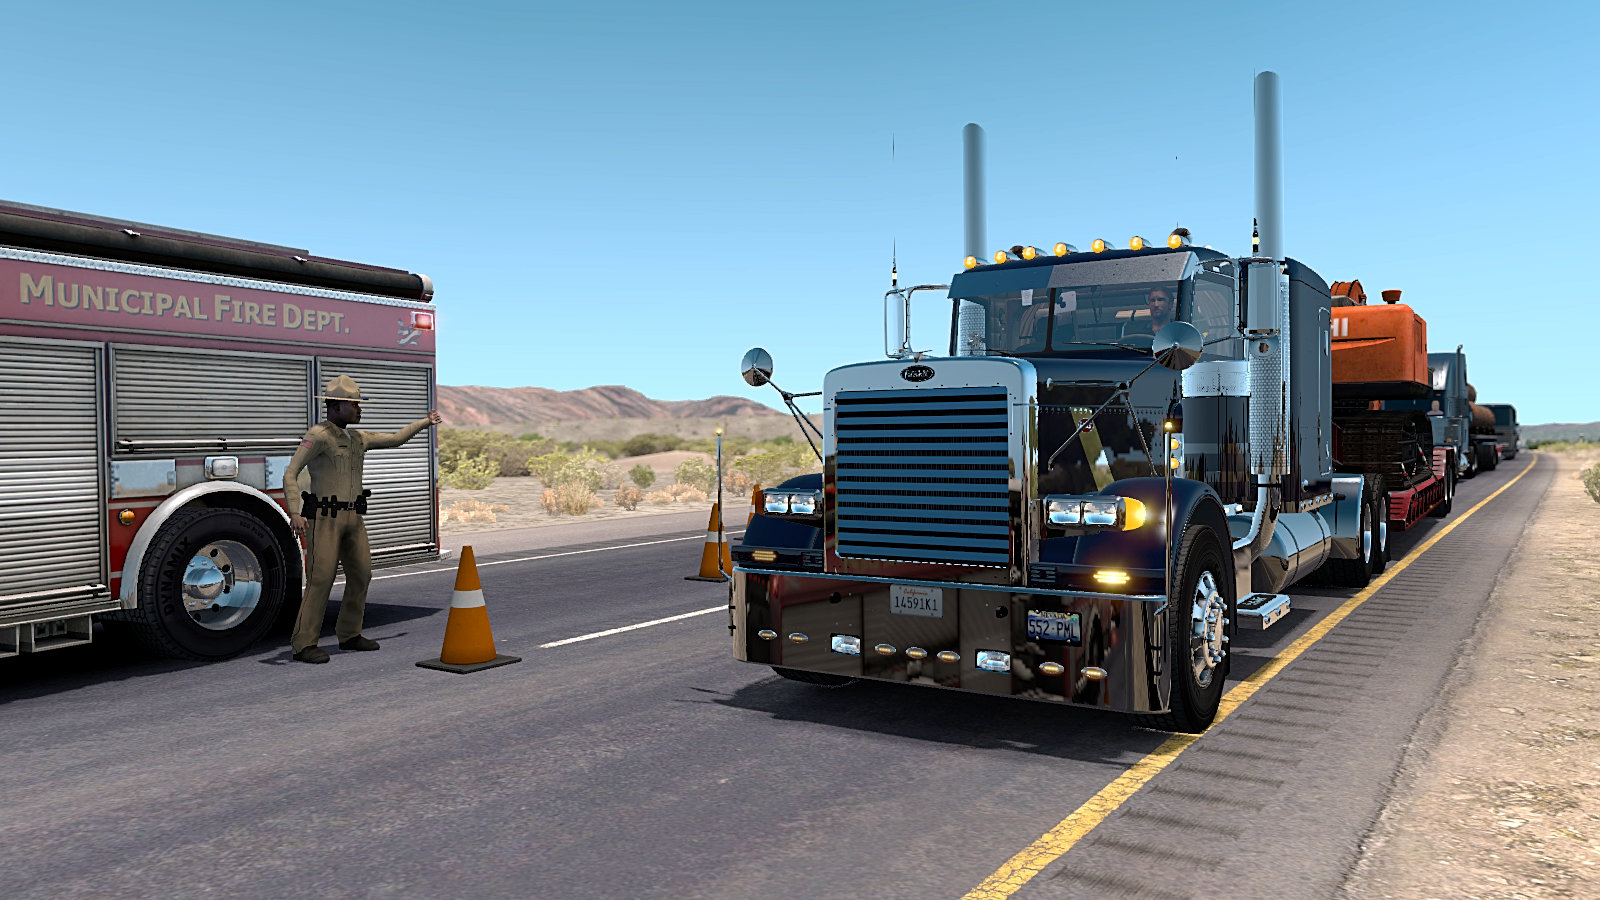 peterbilt 379 – Images from Finchley